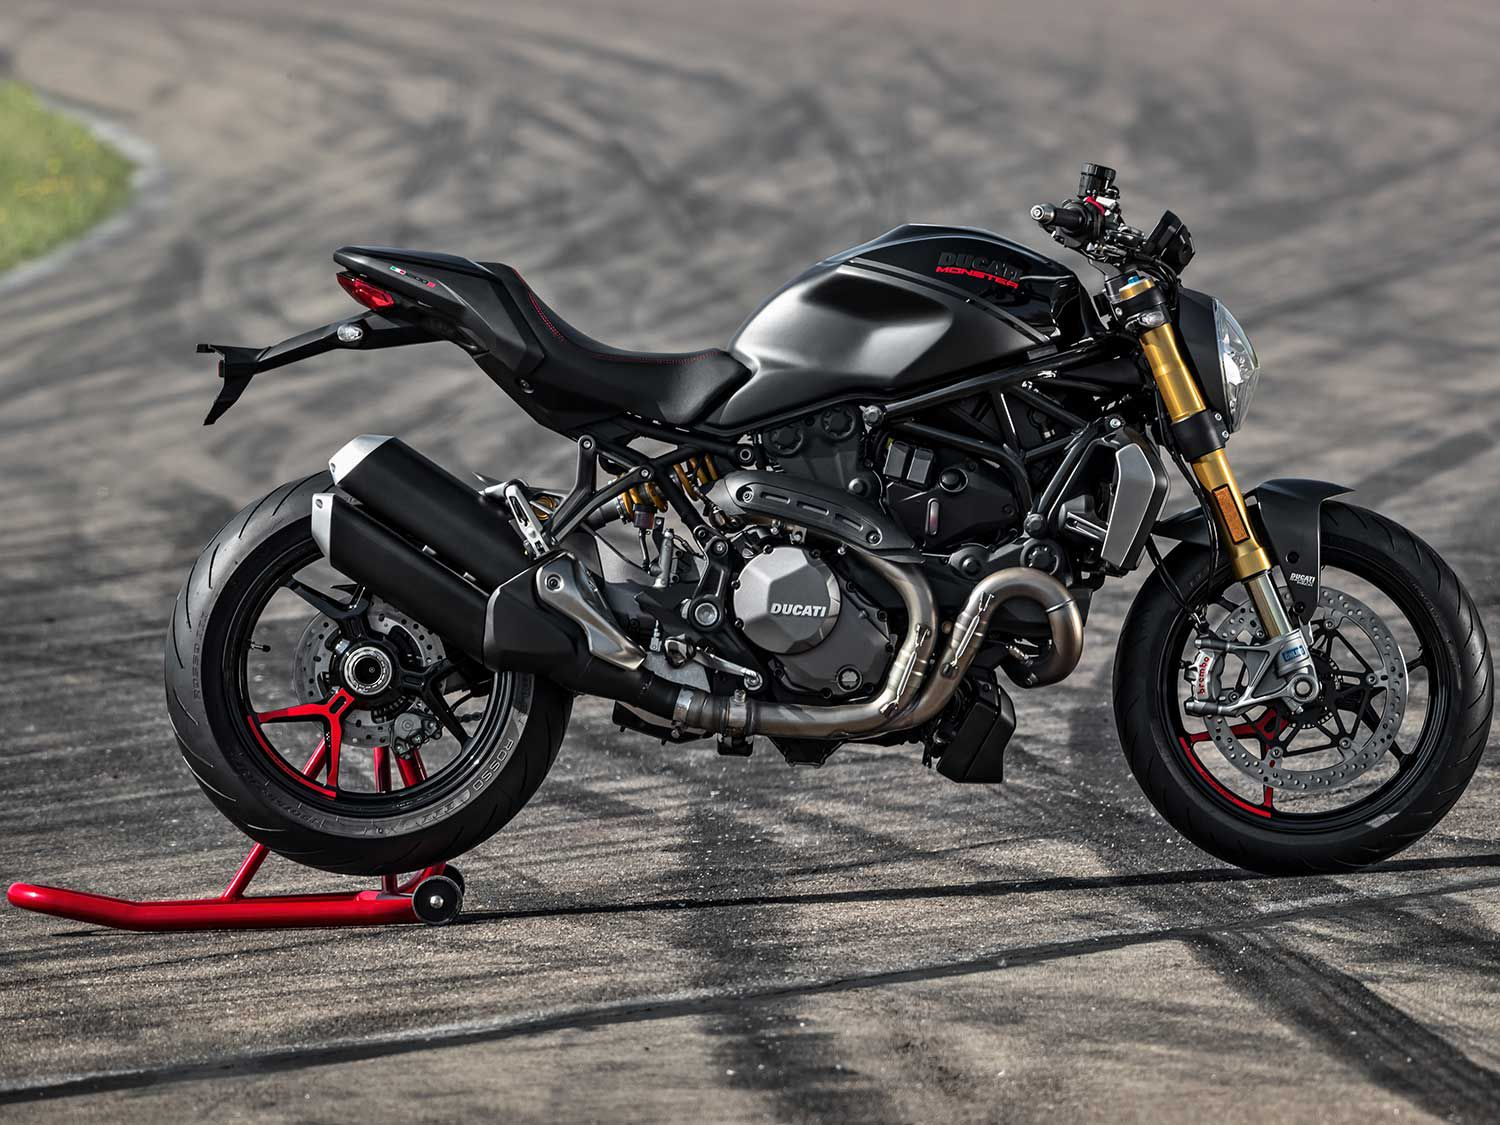 Conversely, the right side of the motorcycle is more tidy. We appreciate the Monster 1200 R-sourced tail and exhaust.